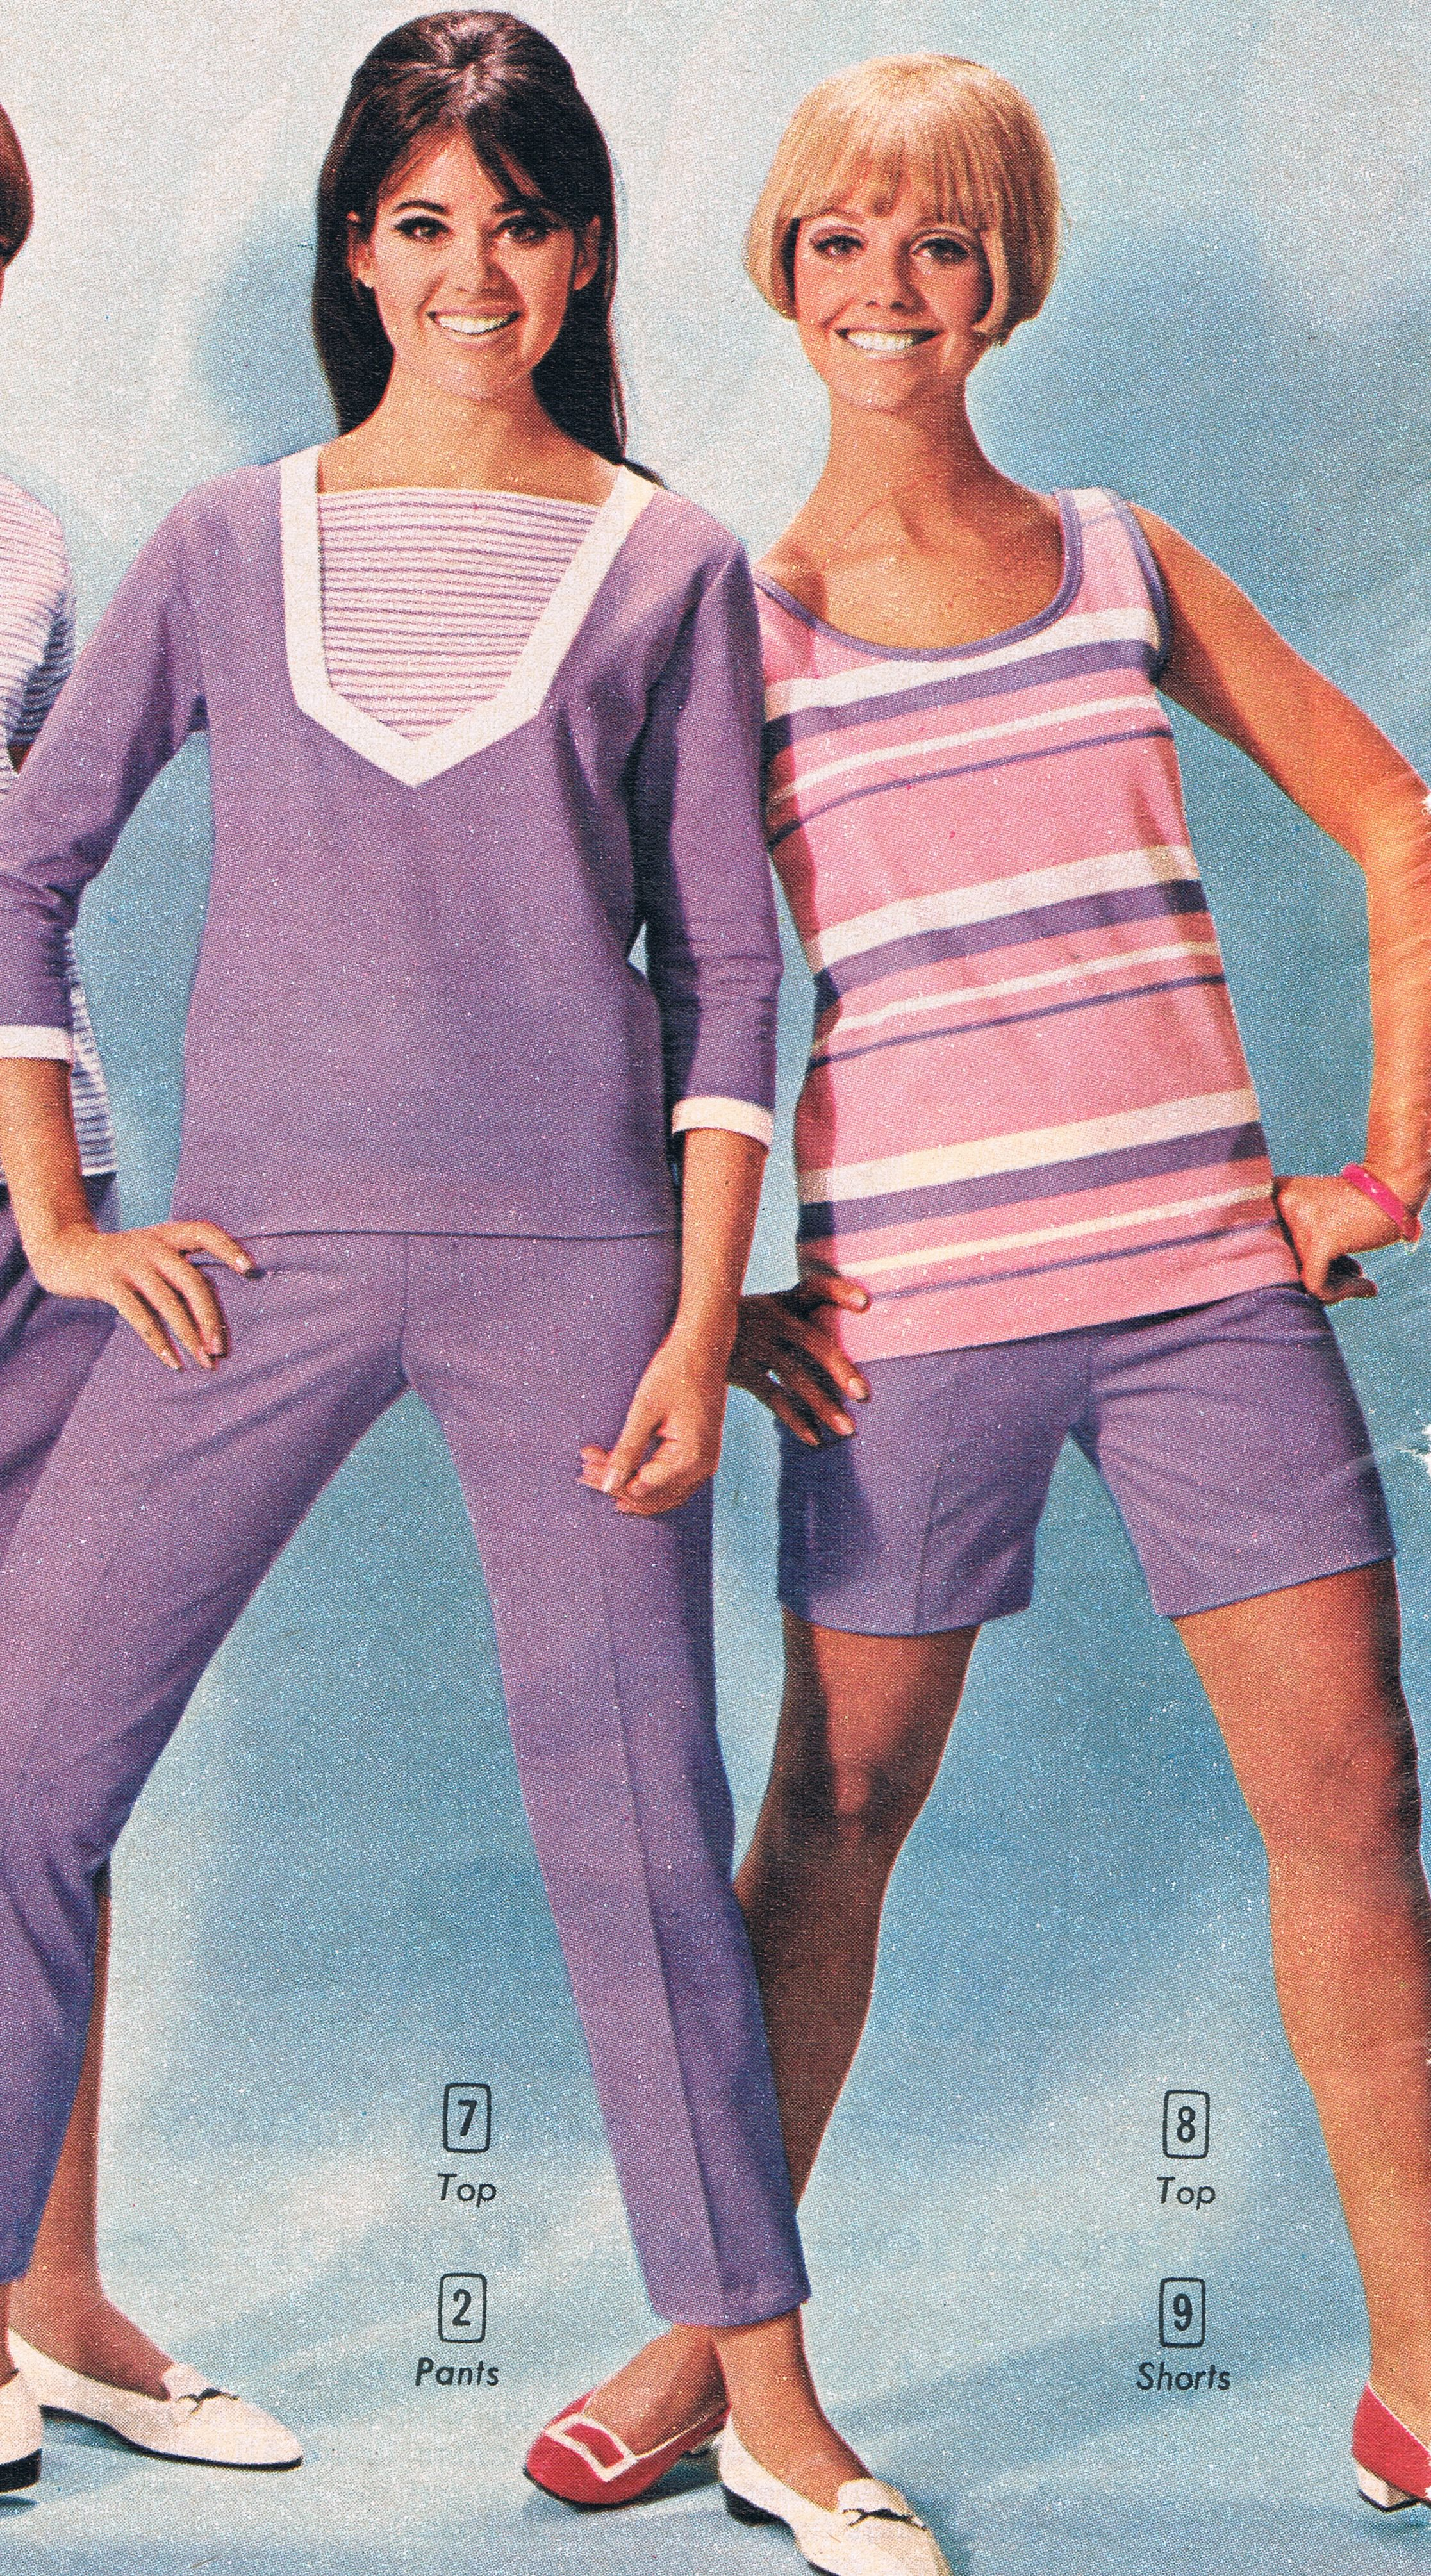 Aldens Catalog 60s. Colleen Corby And Cay Sanderson